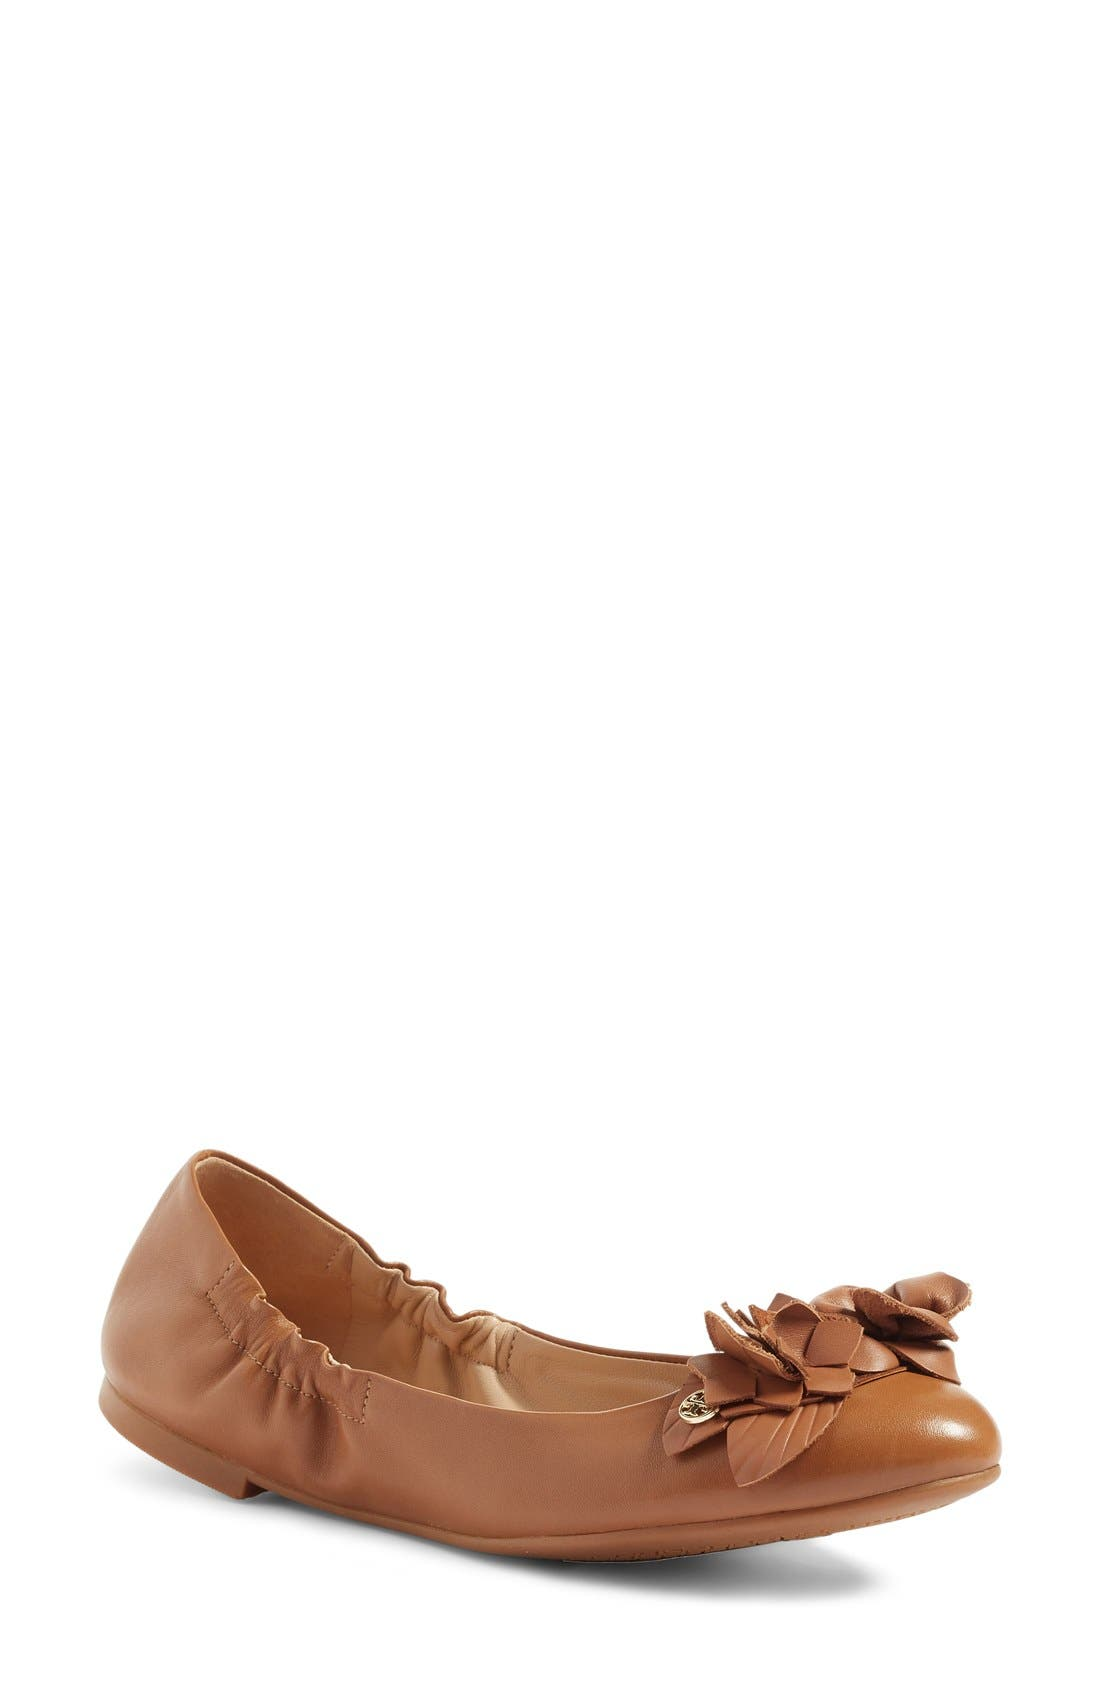 'Blossom' Ballet Flat,                         Main,                         color, Tan Leather